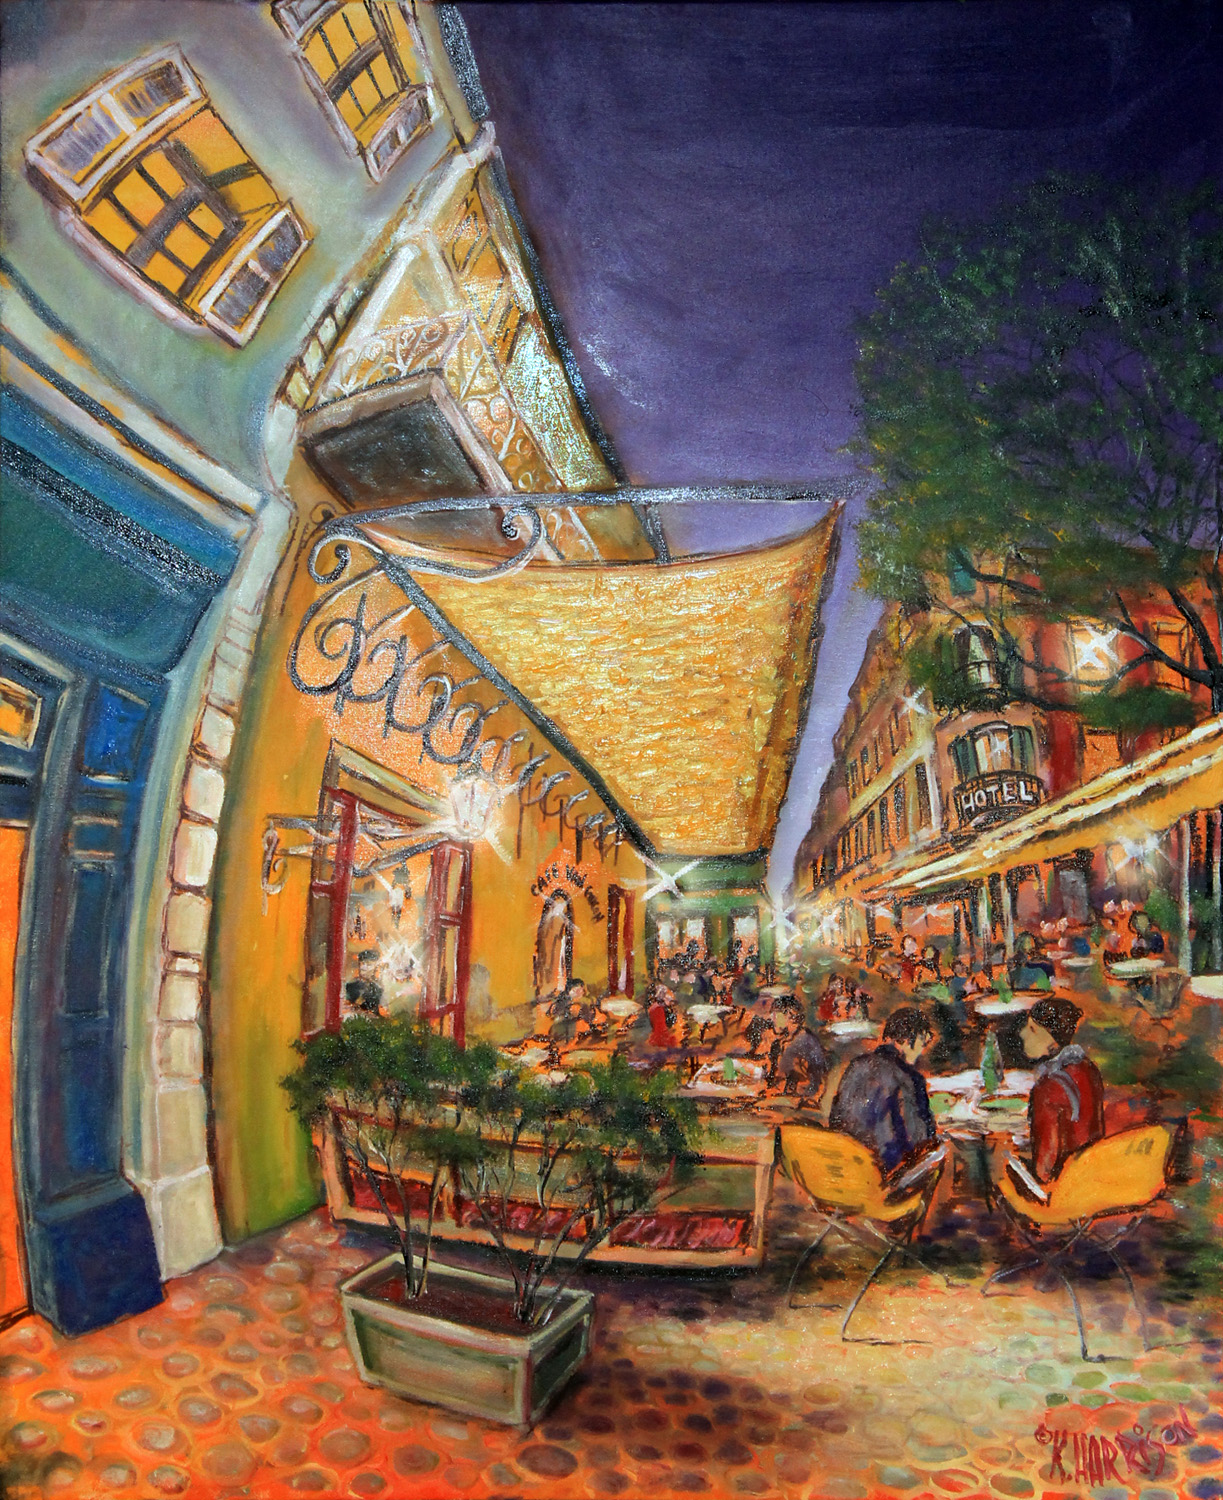 Van Gogh Cafe finished _sm.jpg